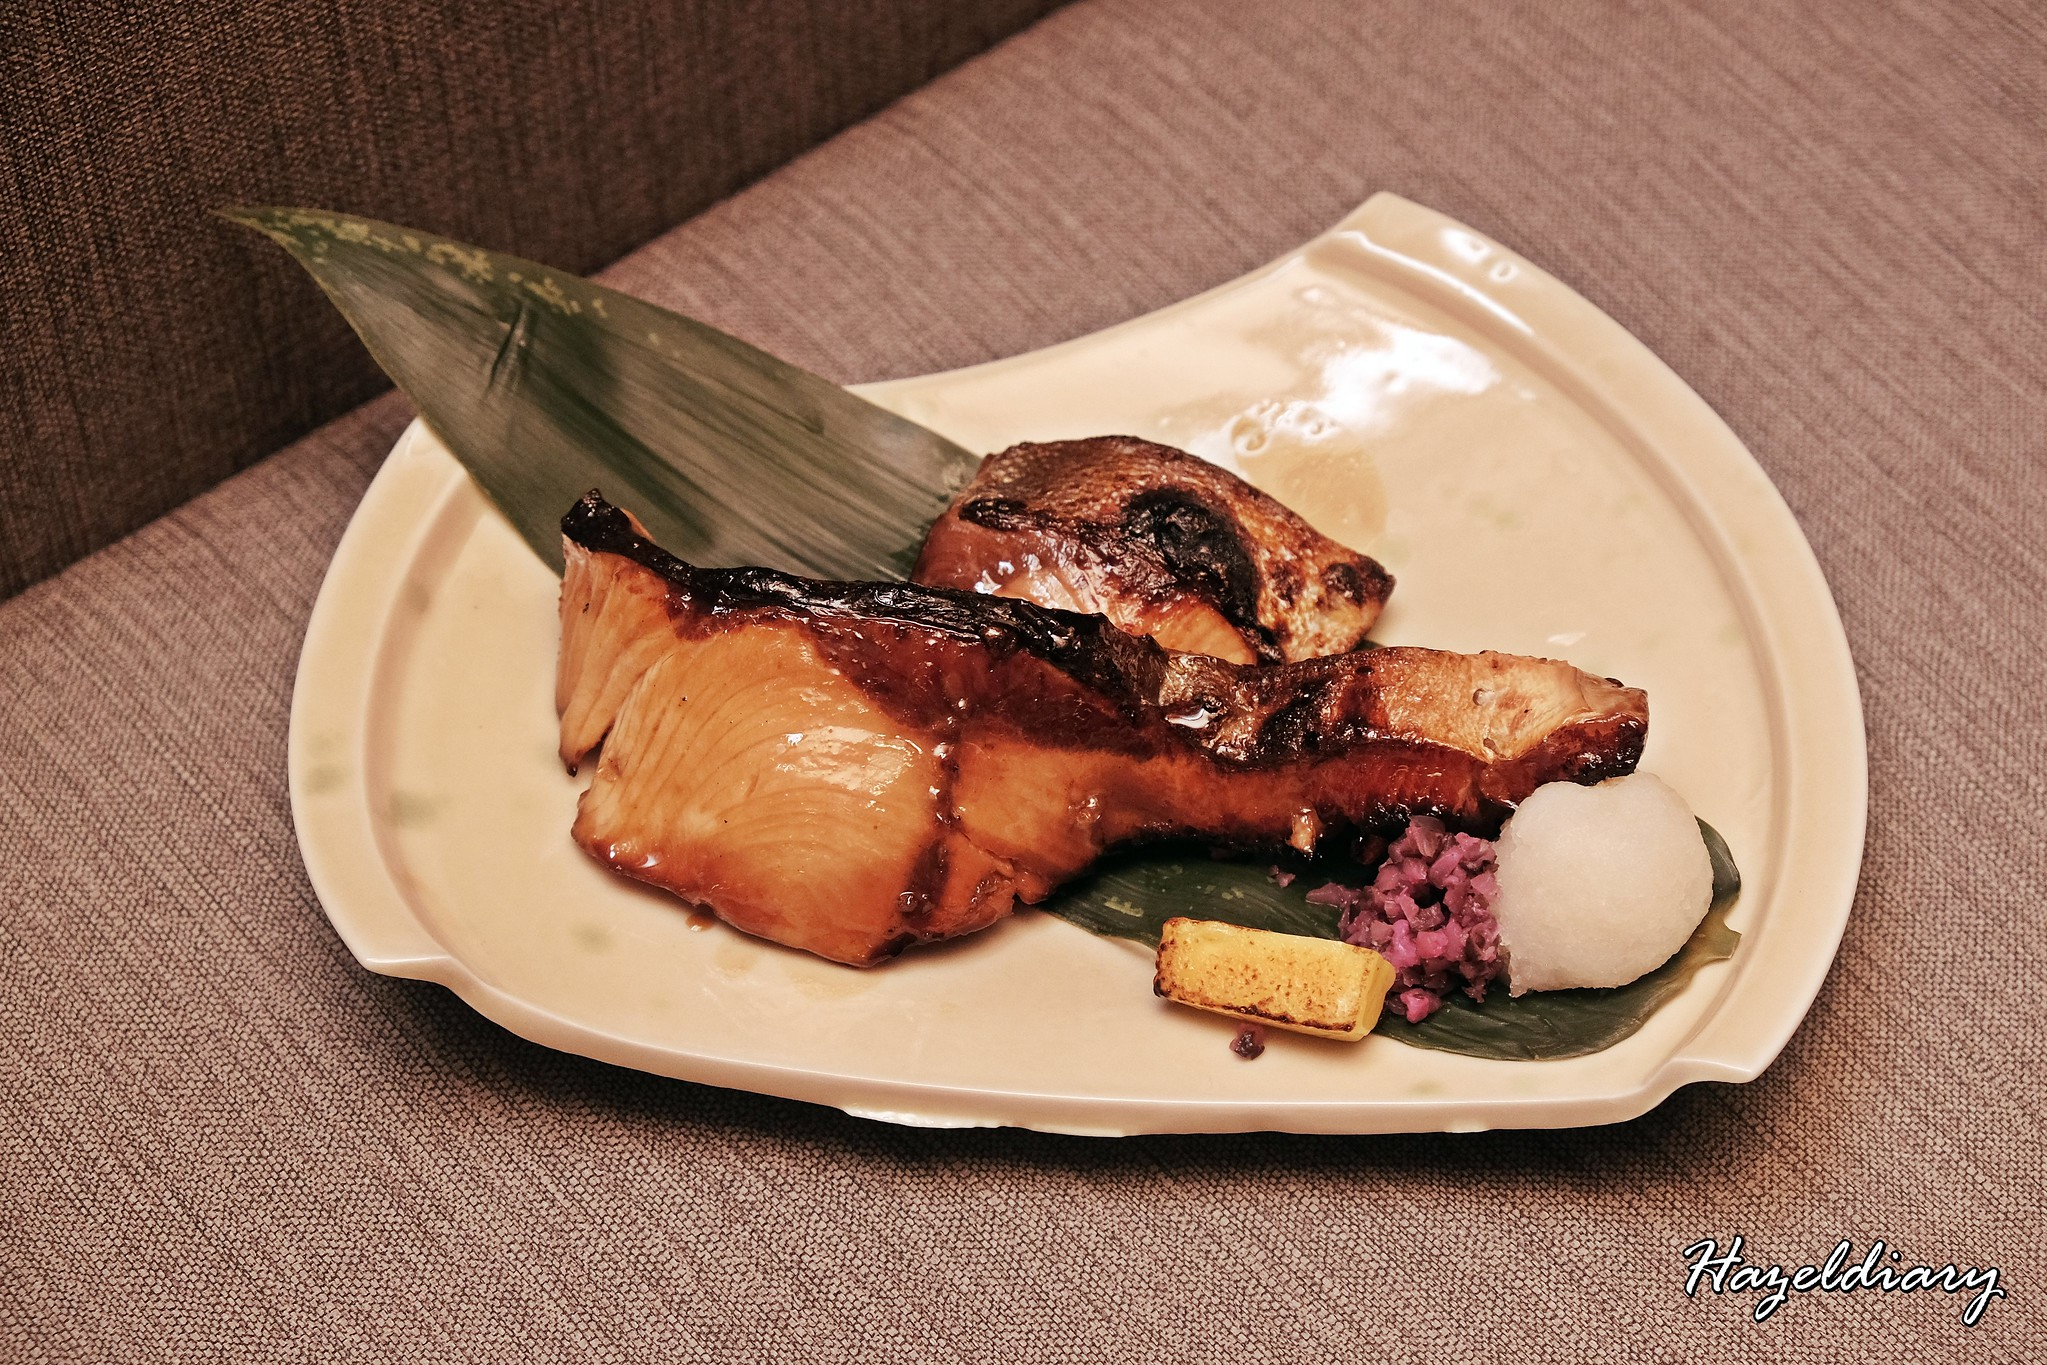 Charcoal grill and salad bar keisuke singapore-Yellowtail